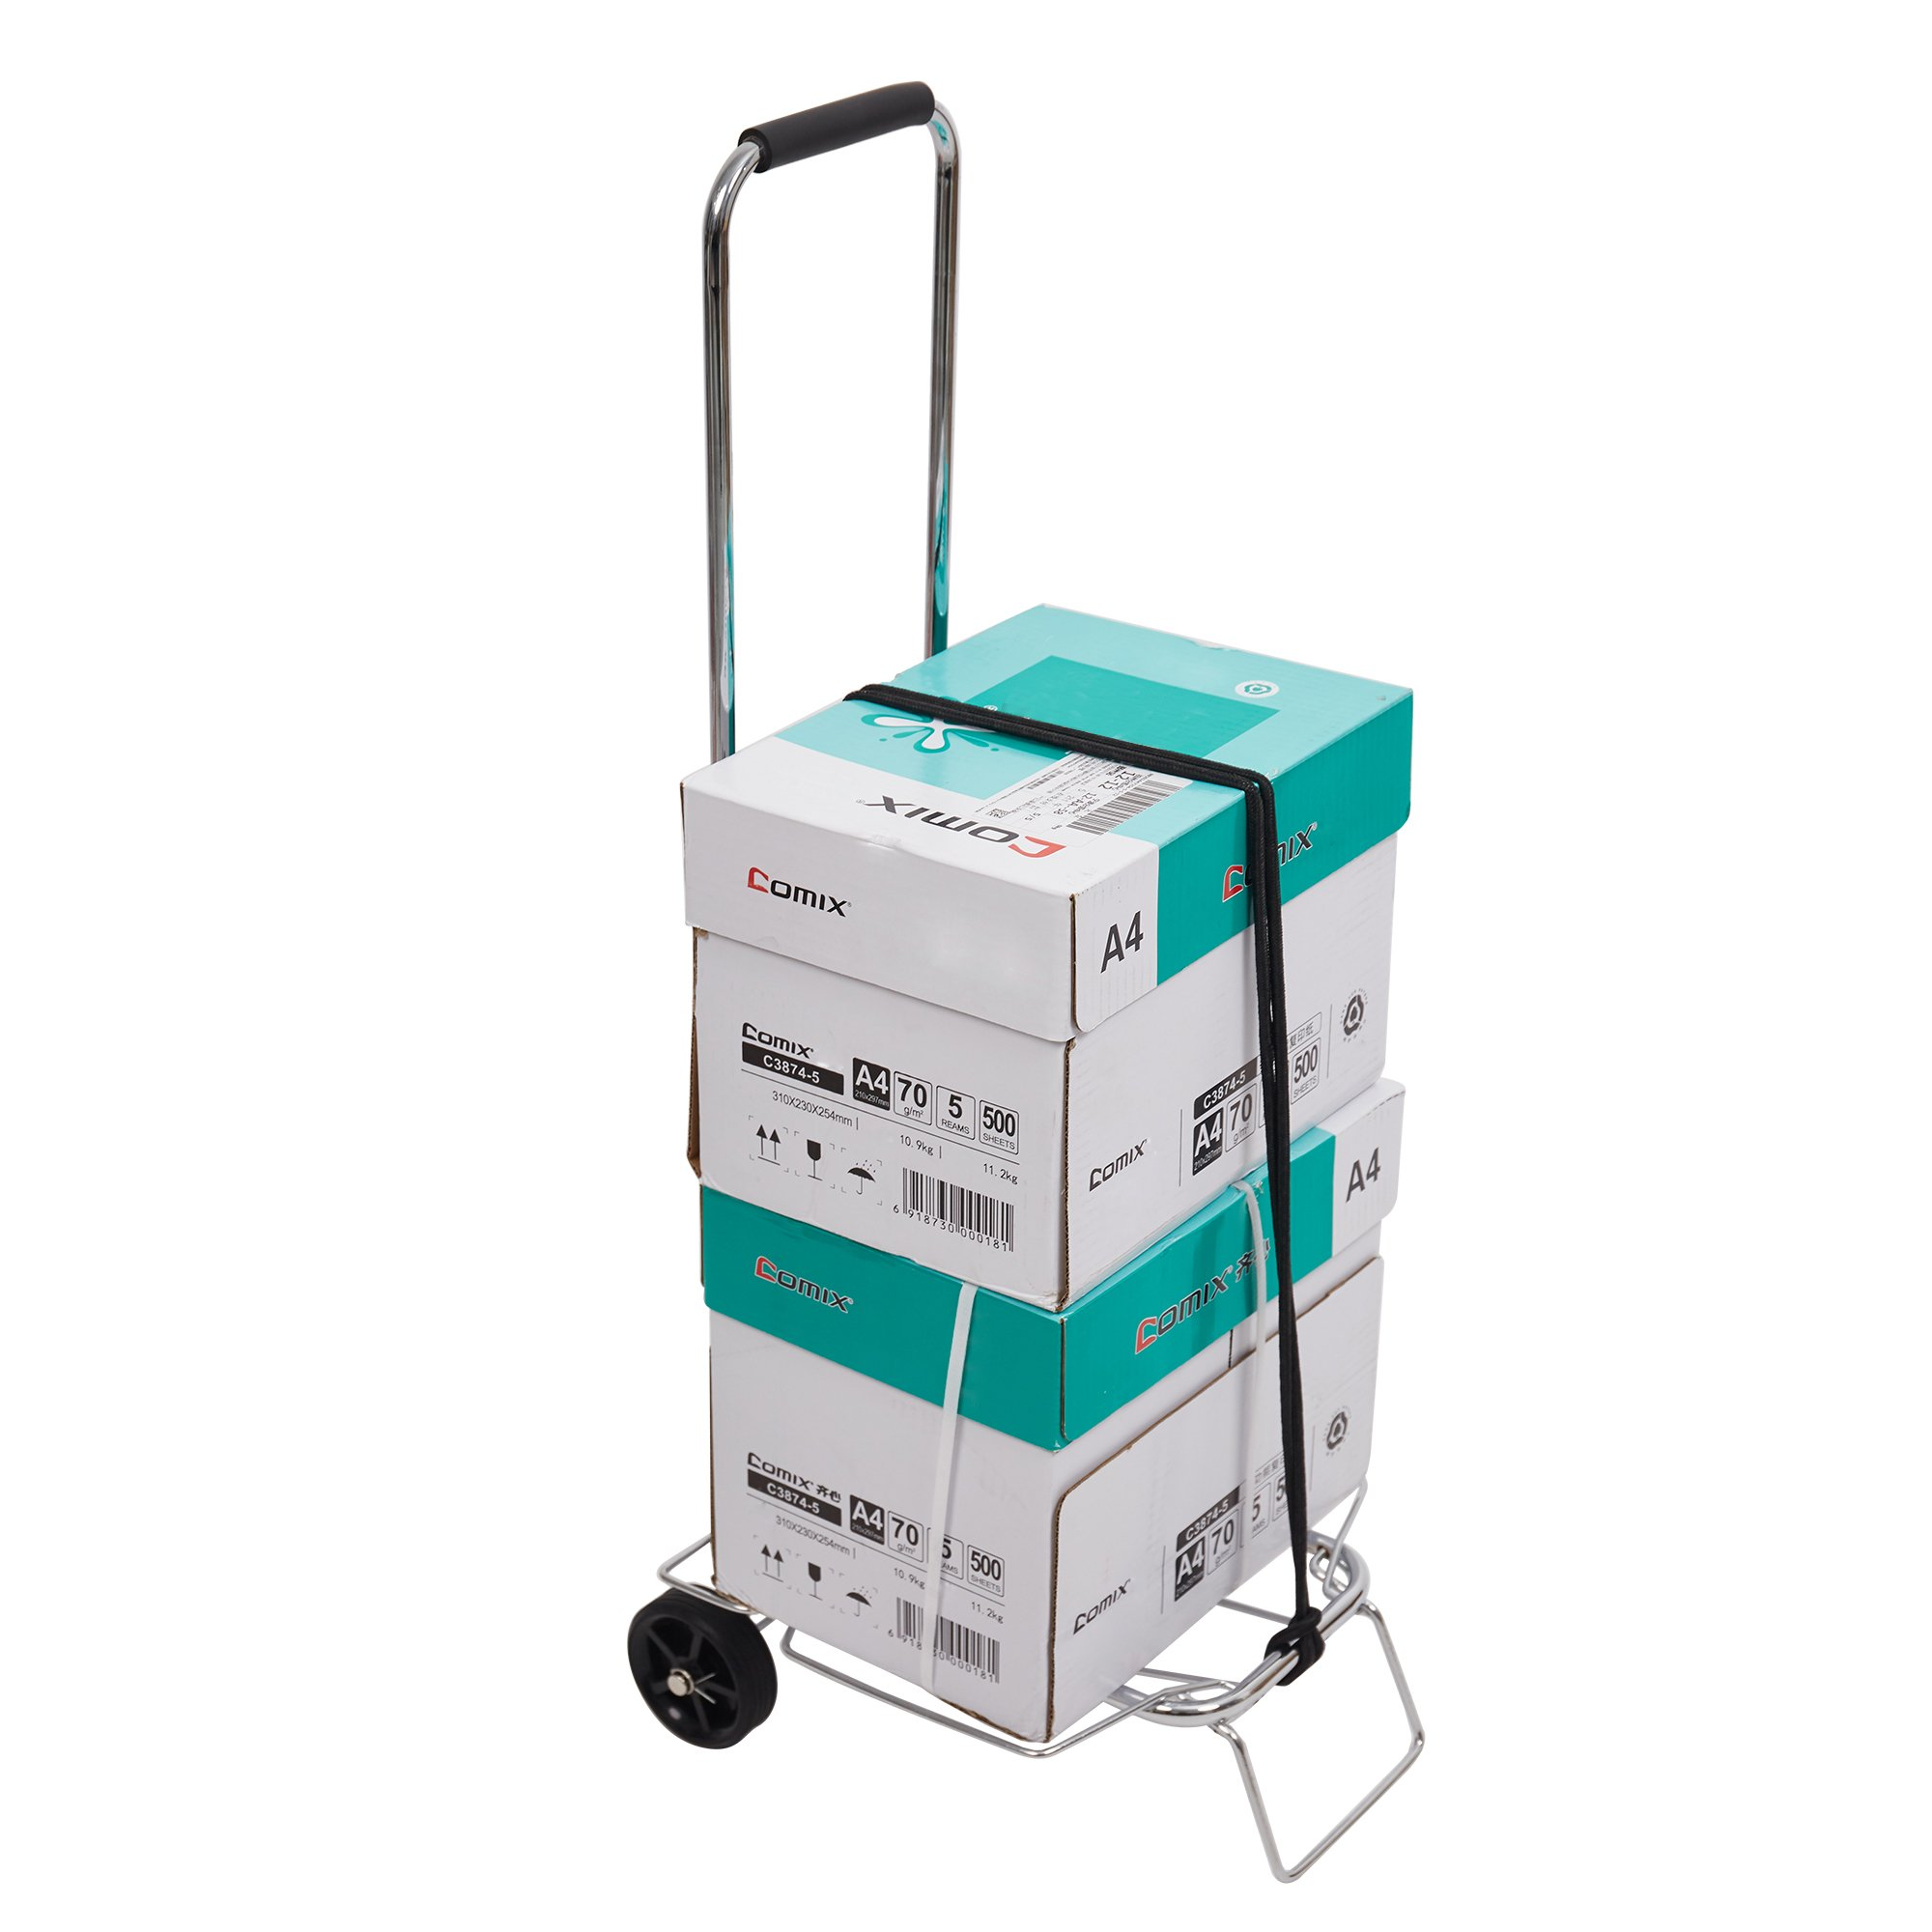 Dporticus Aluminum Folding Hand Truck Multi-Use Cart for Luggage, Personal, Travel, Moving and Office Use Dolly with Wheels, 55 lbs(Silver)